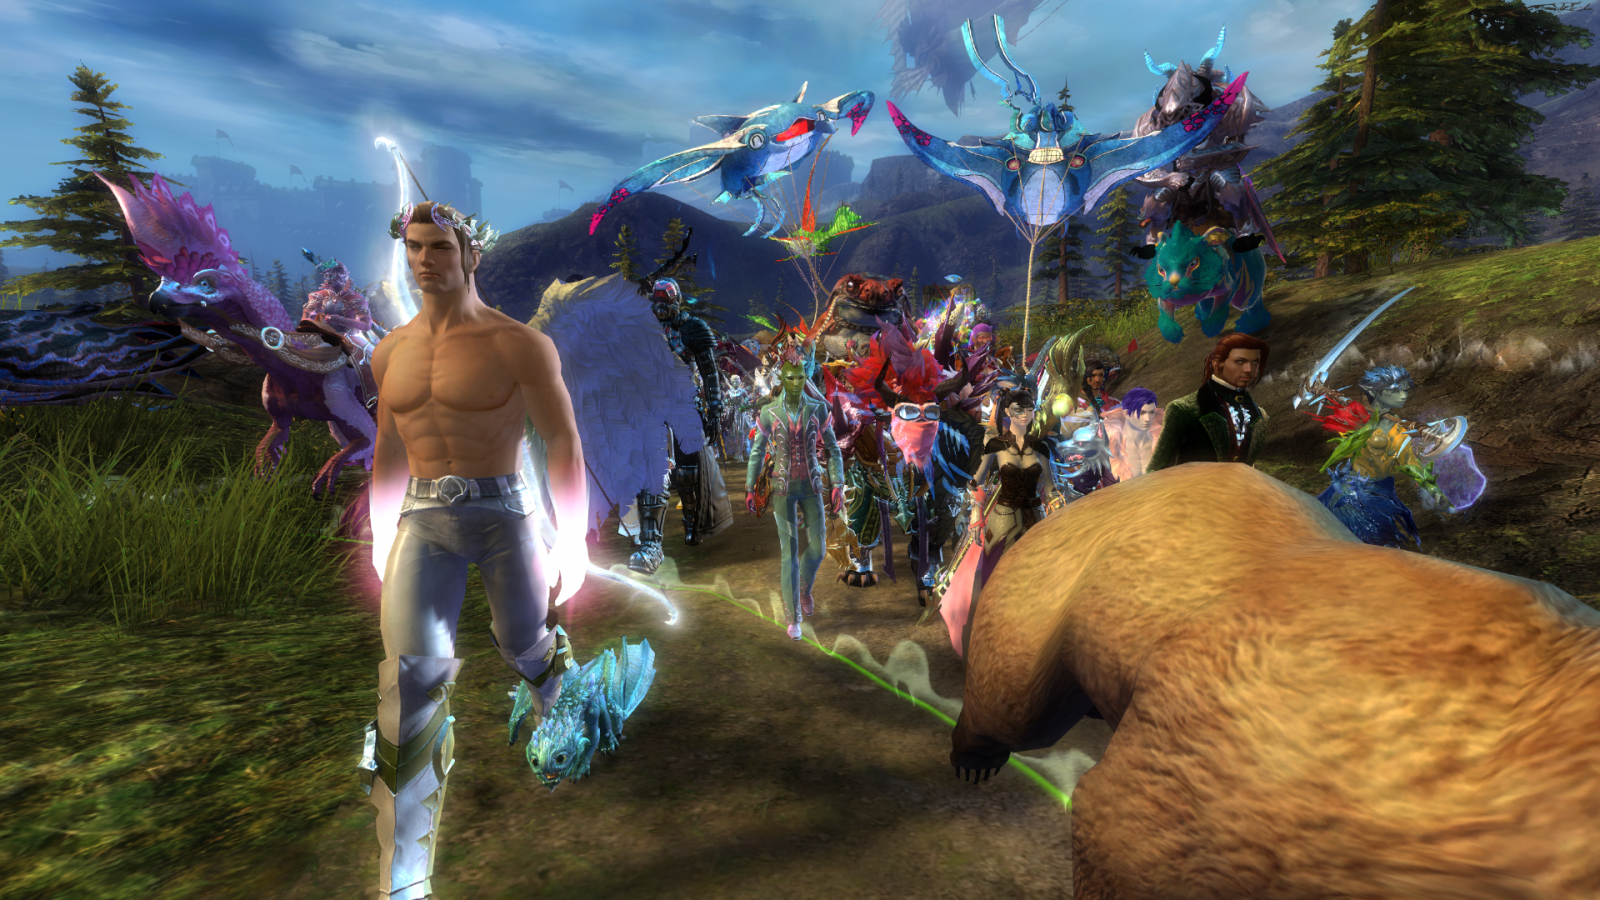 Lots of great sights around Tyria during the march :P